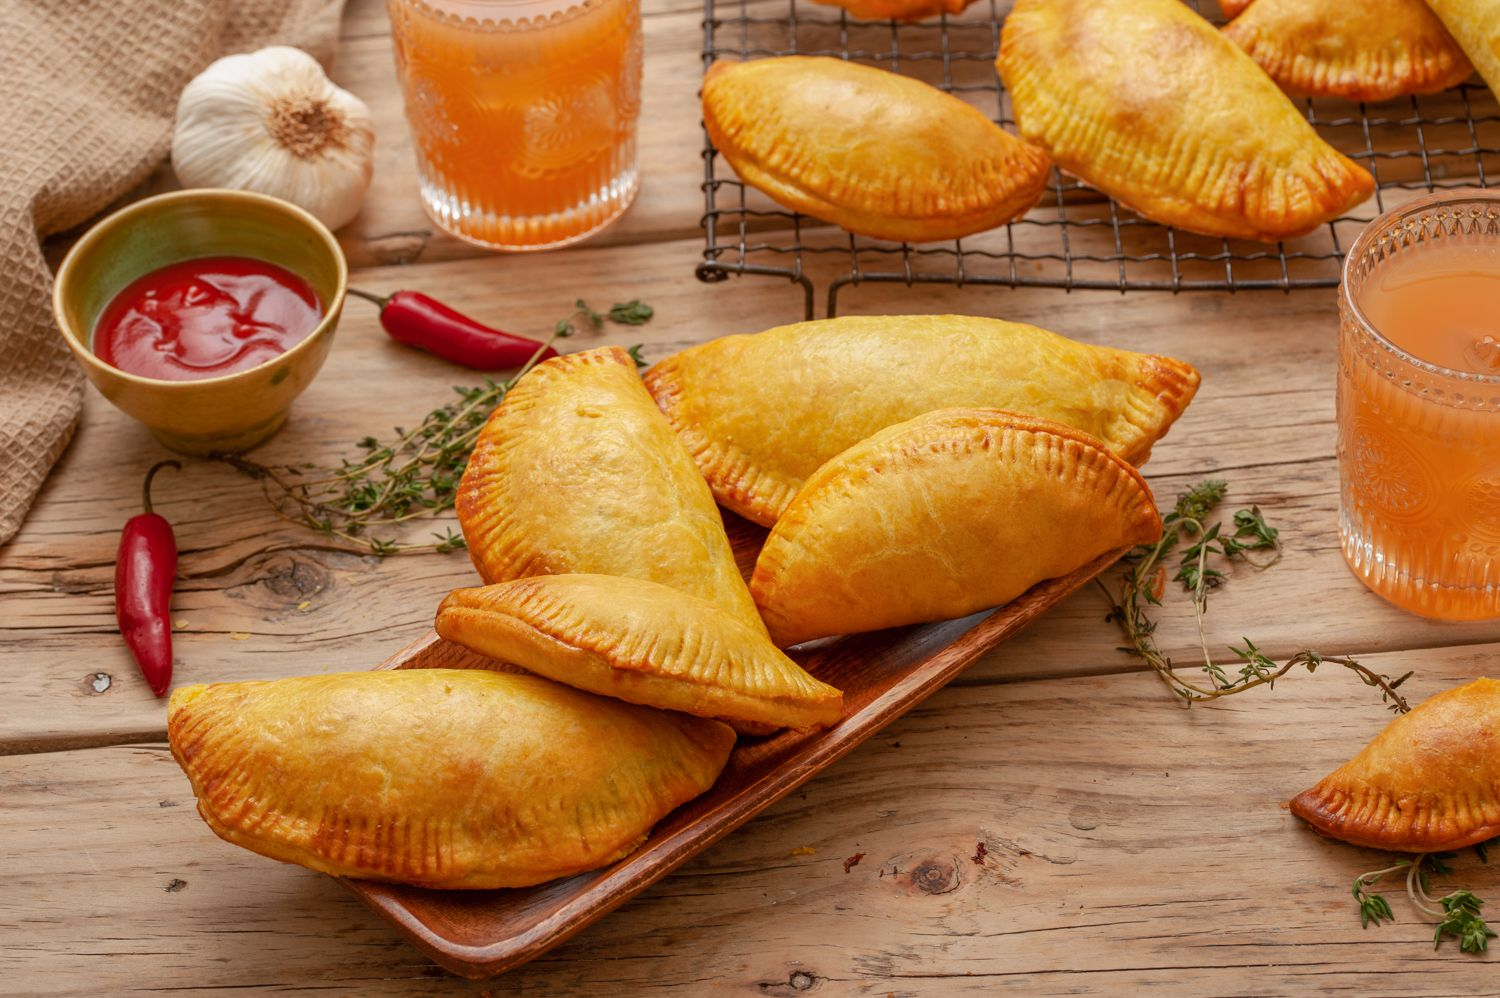 jamaican-beef-patties-recipe-2137762-Hero-5bcf7fd046e0fb00260b6a18.jpg